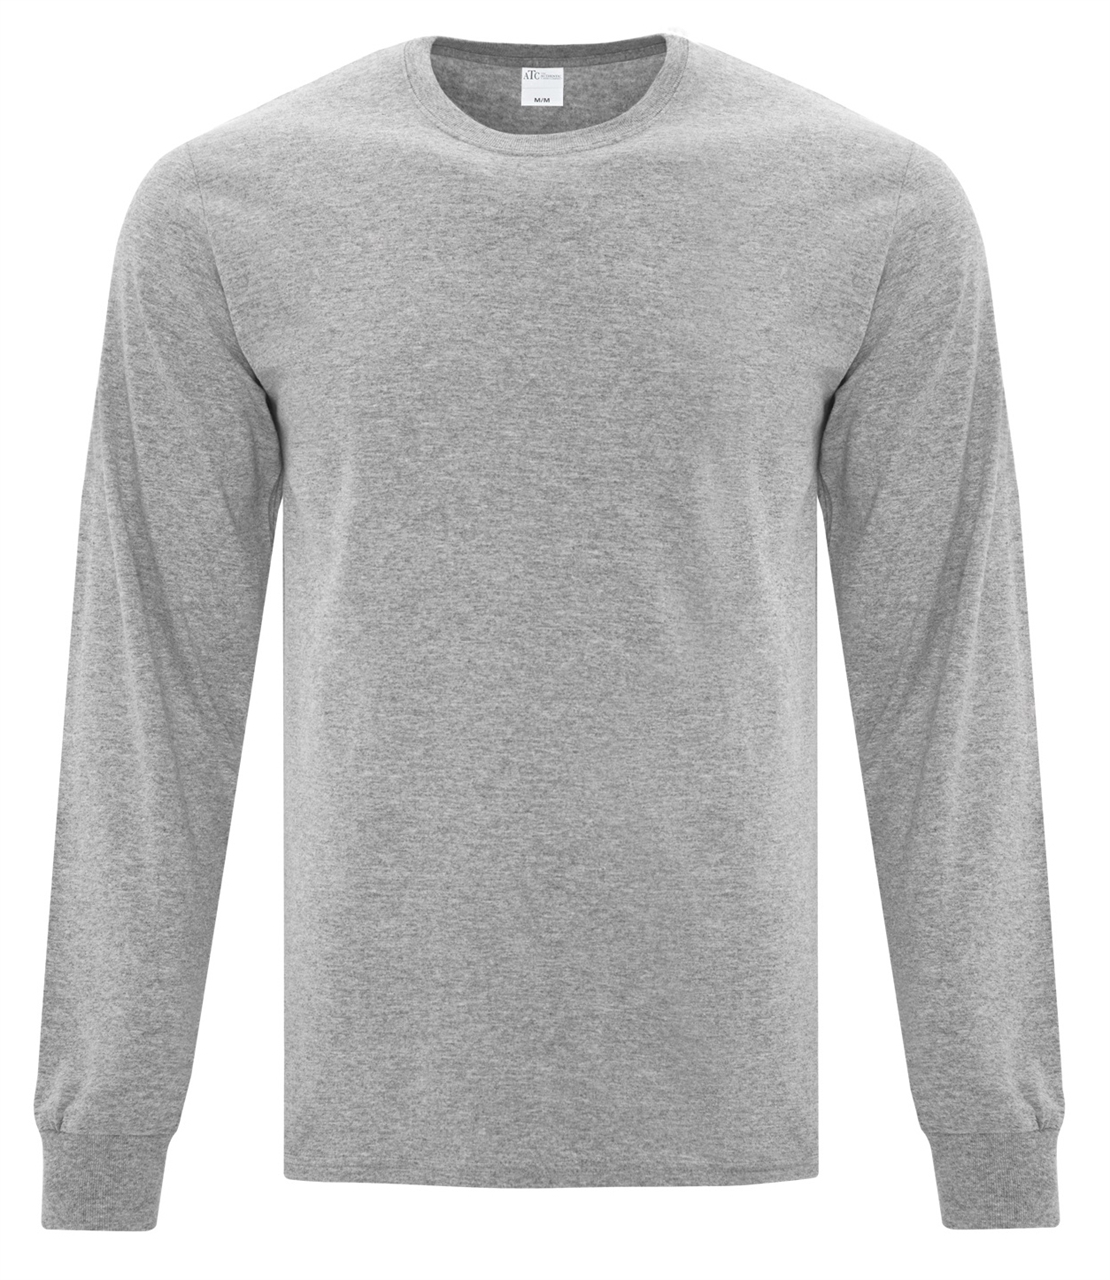 Picture of ATC Everyday Cotton Long Sleeve Tee